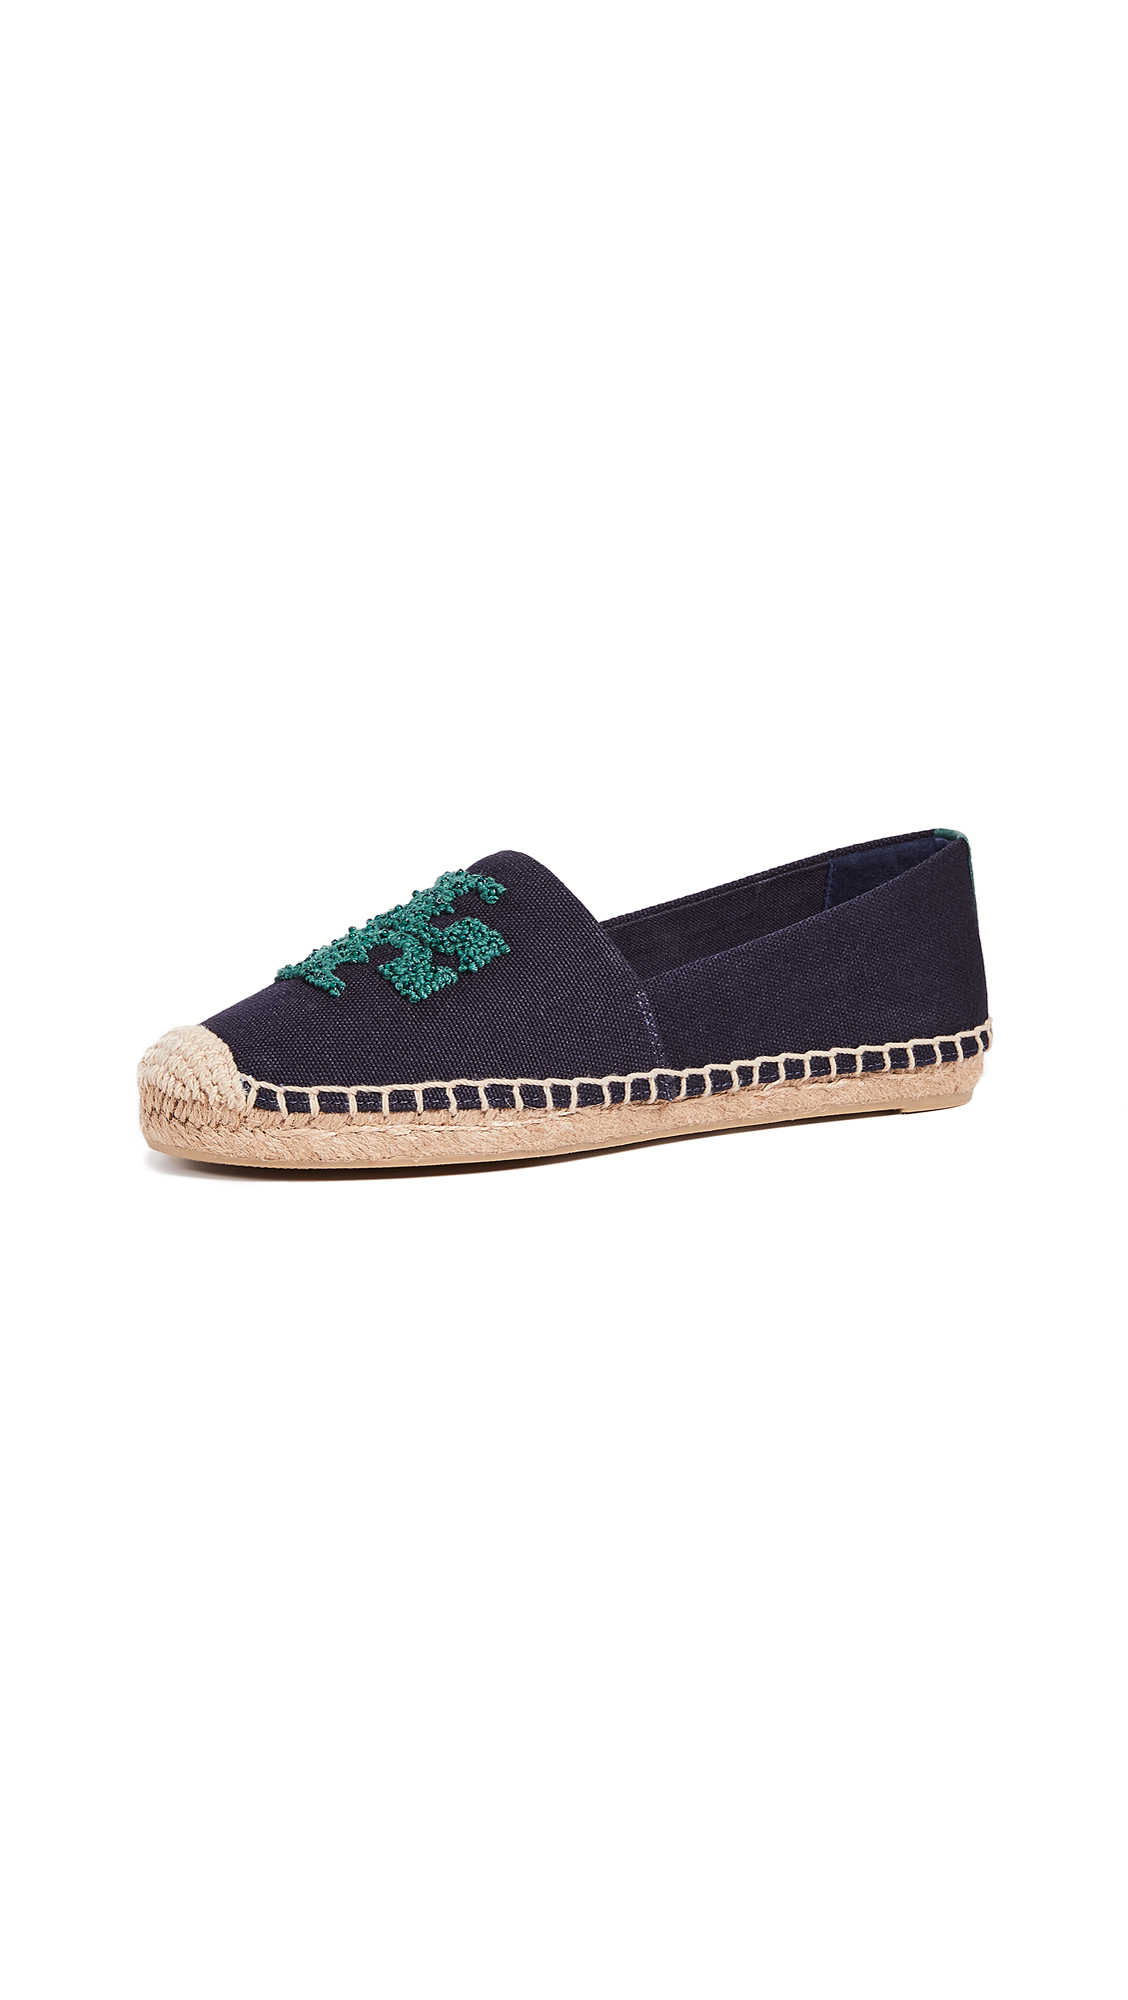 Tory Burch Elisa Logo Flat Espadrilles - Perfect Navy/Norwood